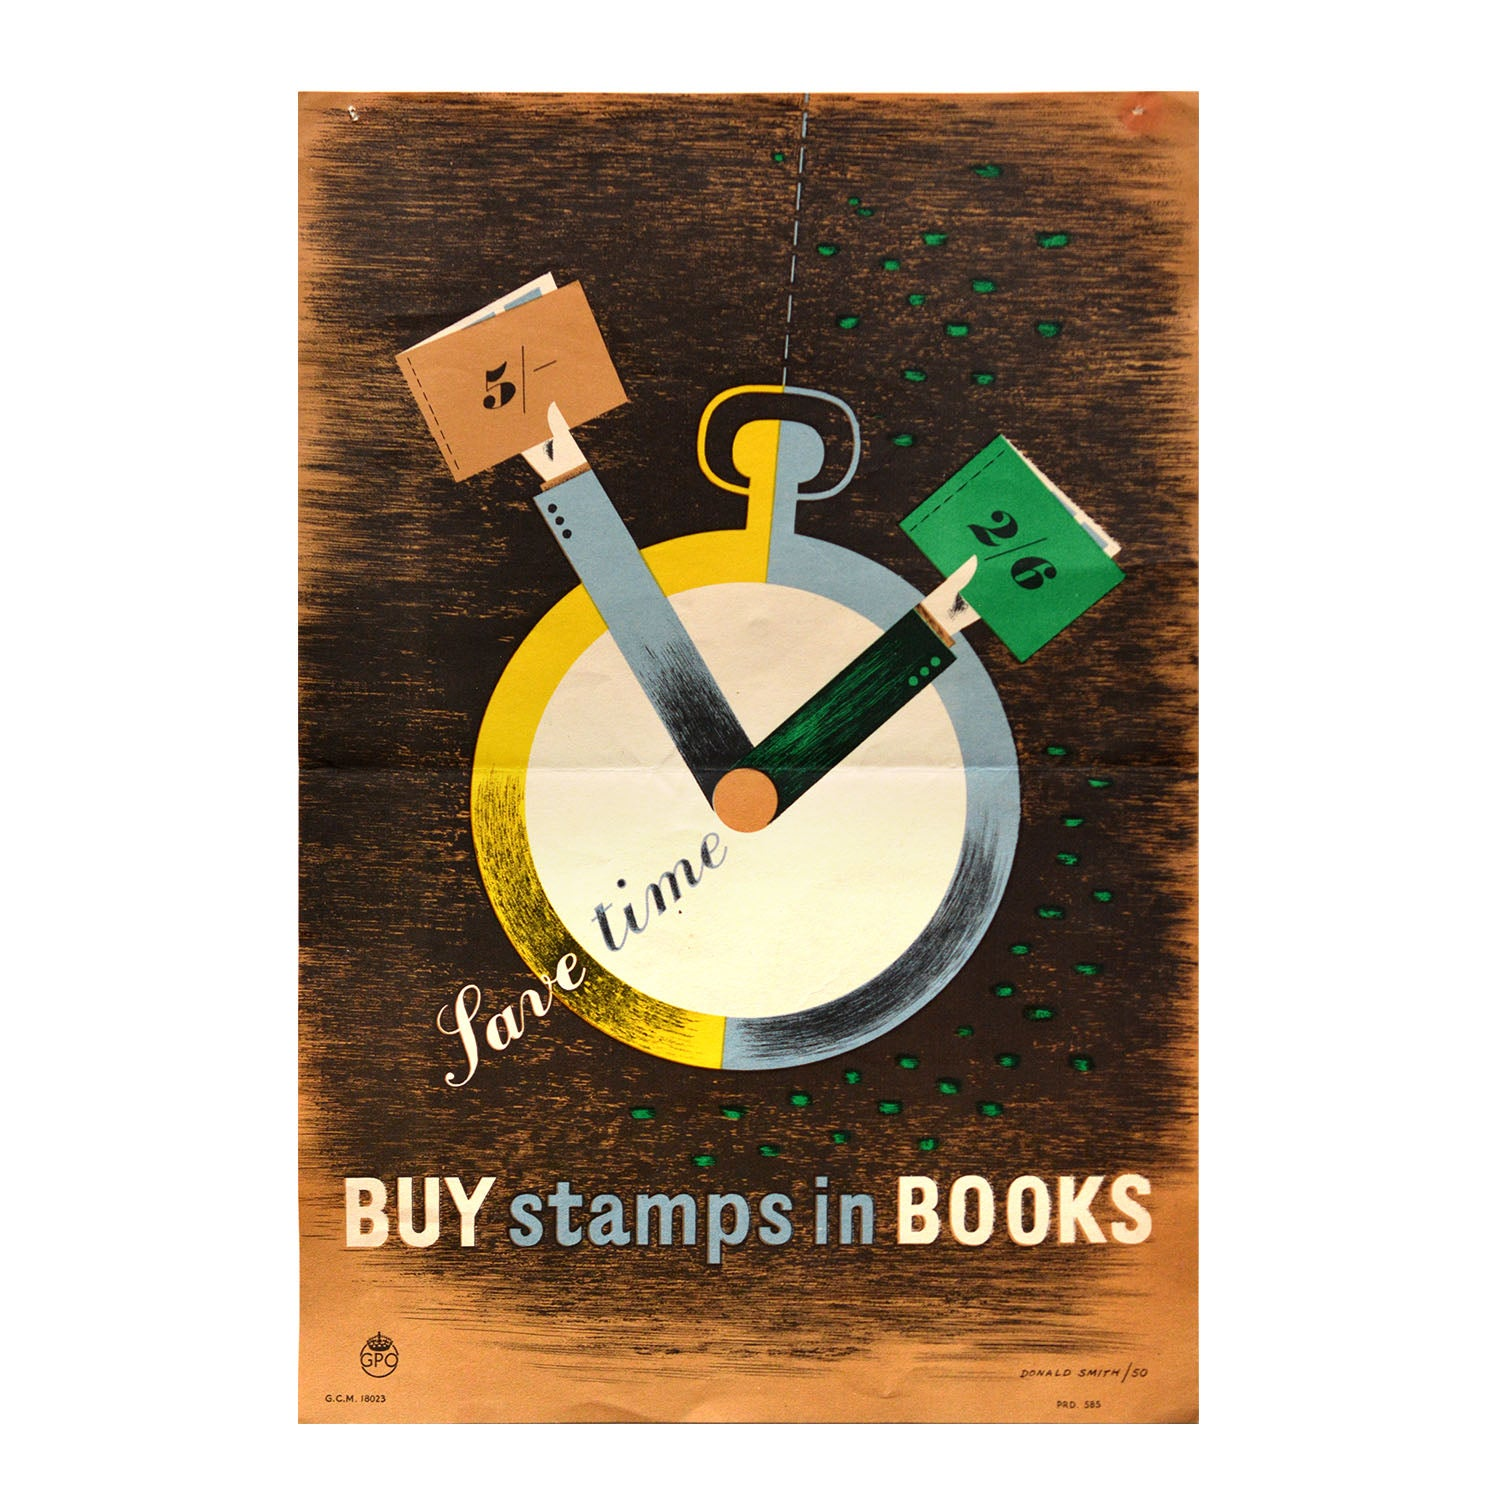 Original GPO poster Buy stamps in books